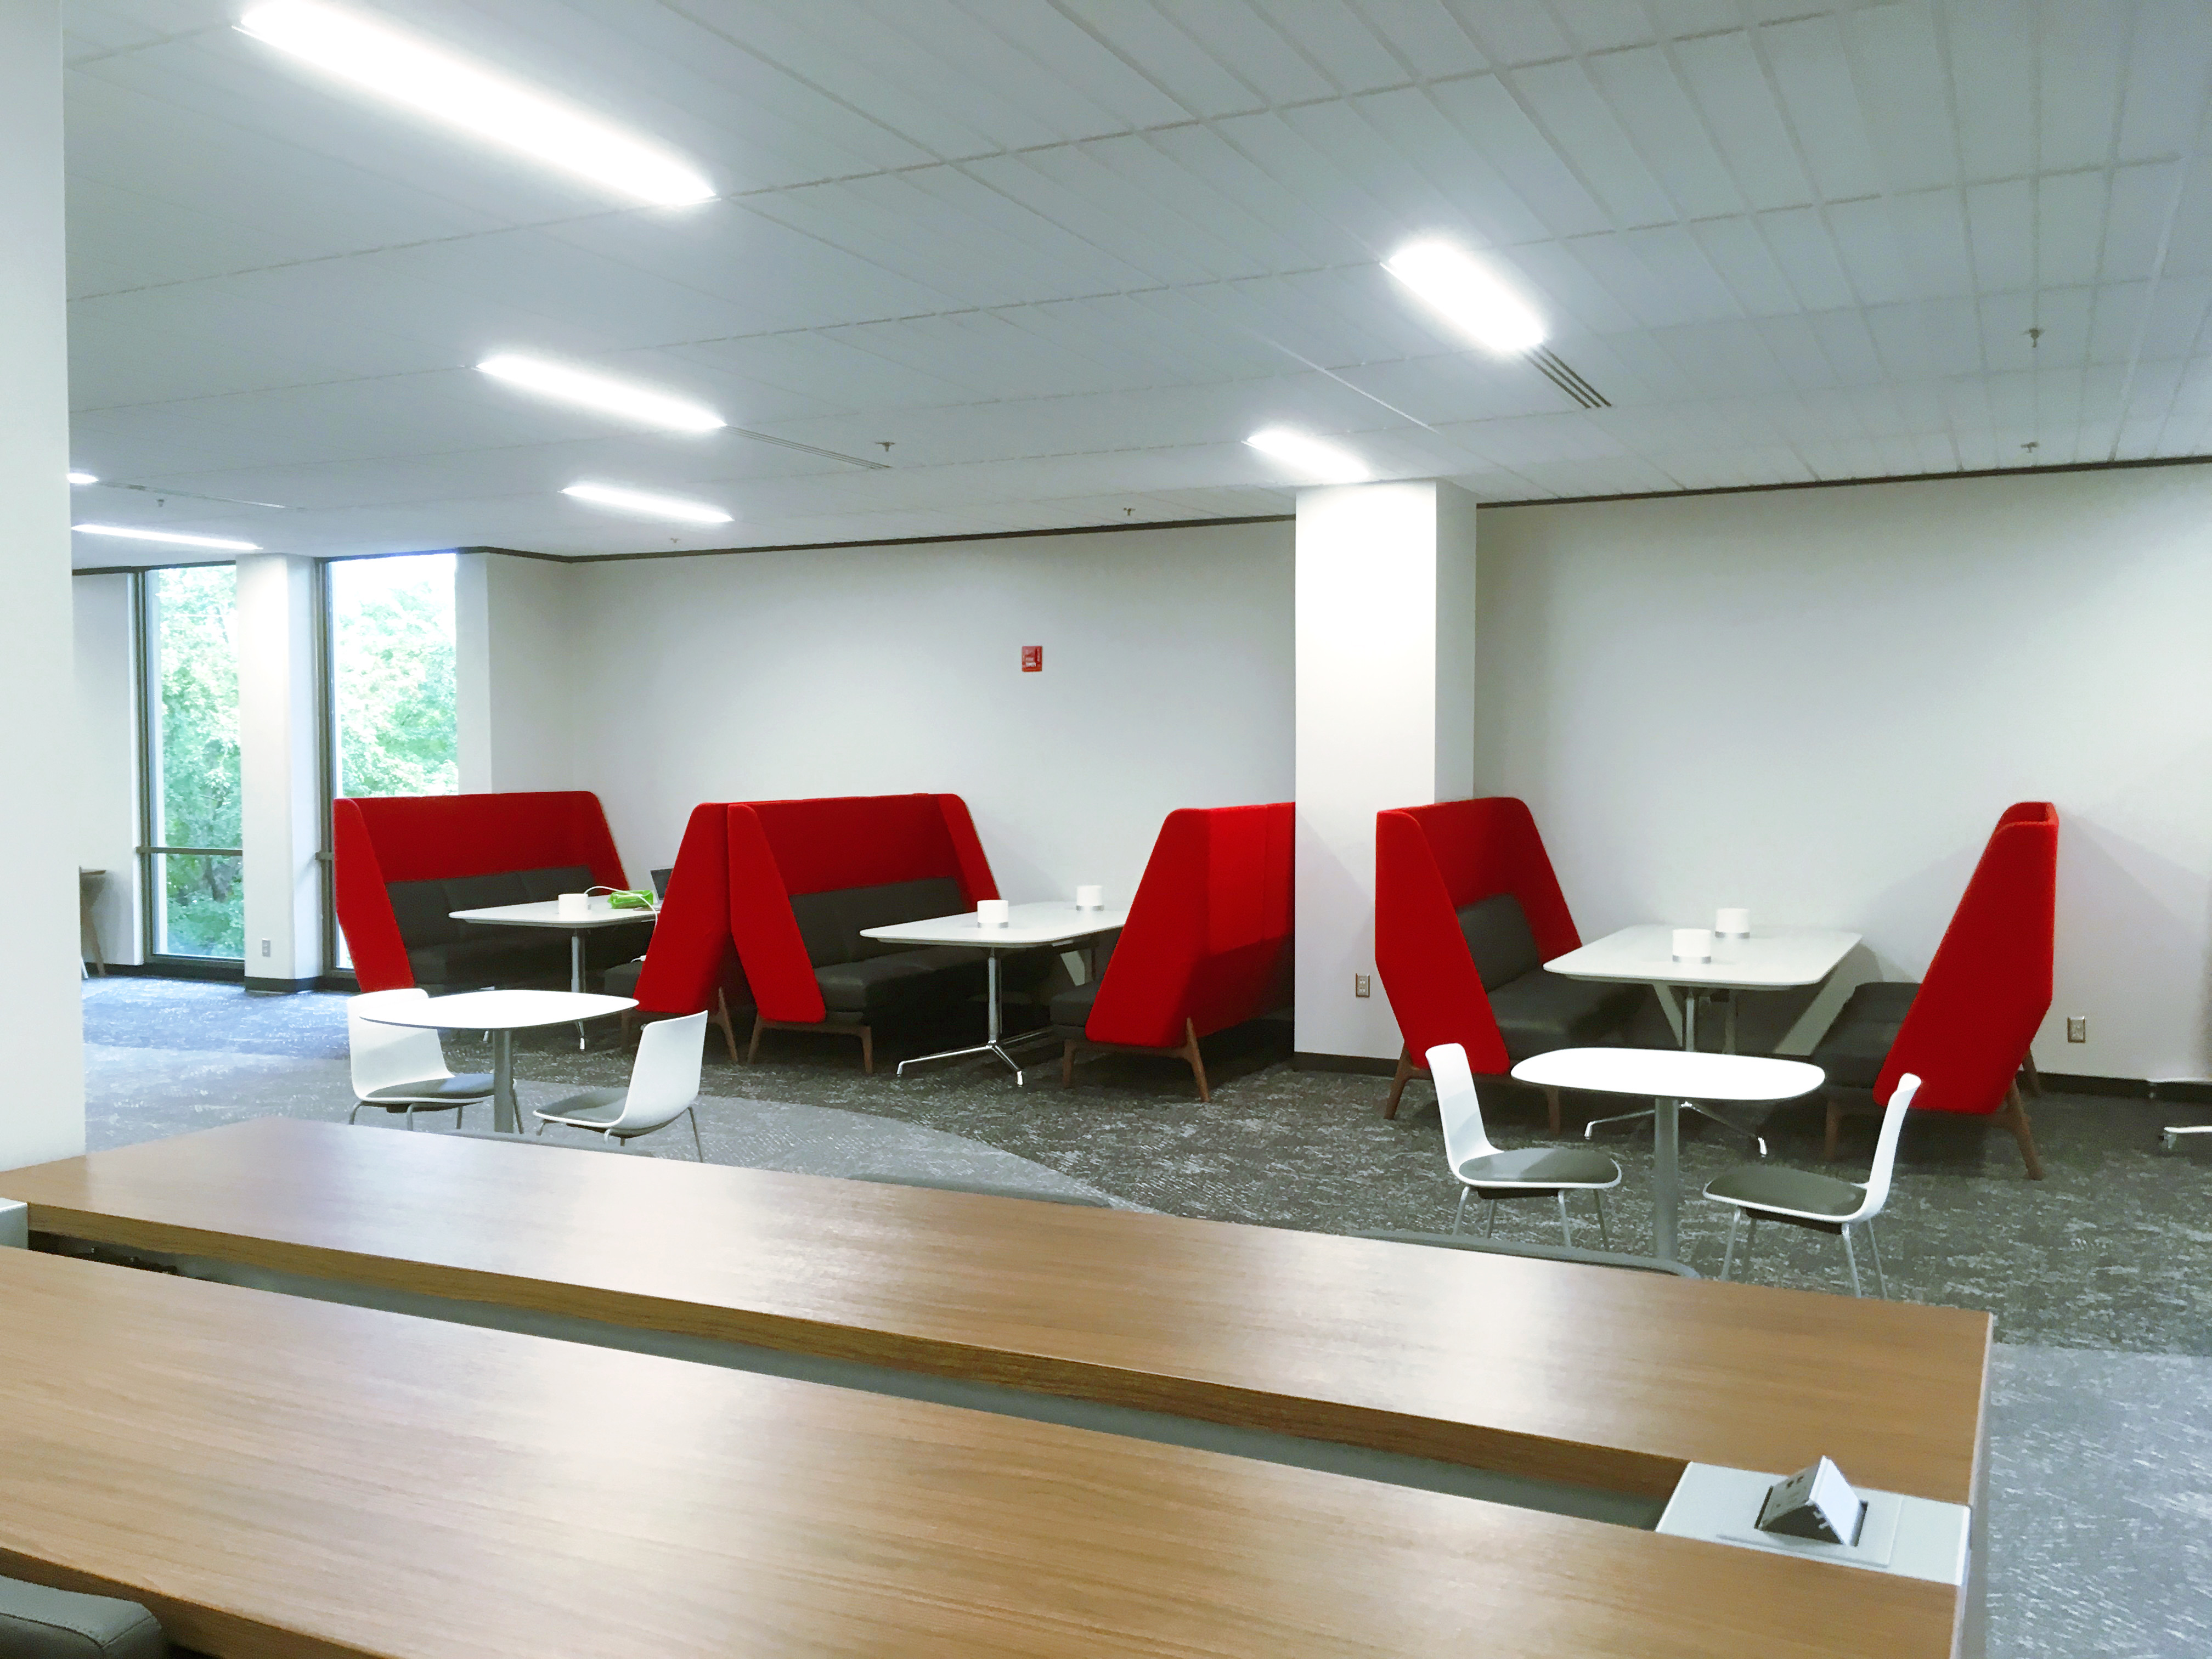 Study space on second floor in Learning Commons showing booths and tables